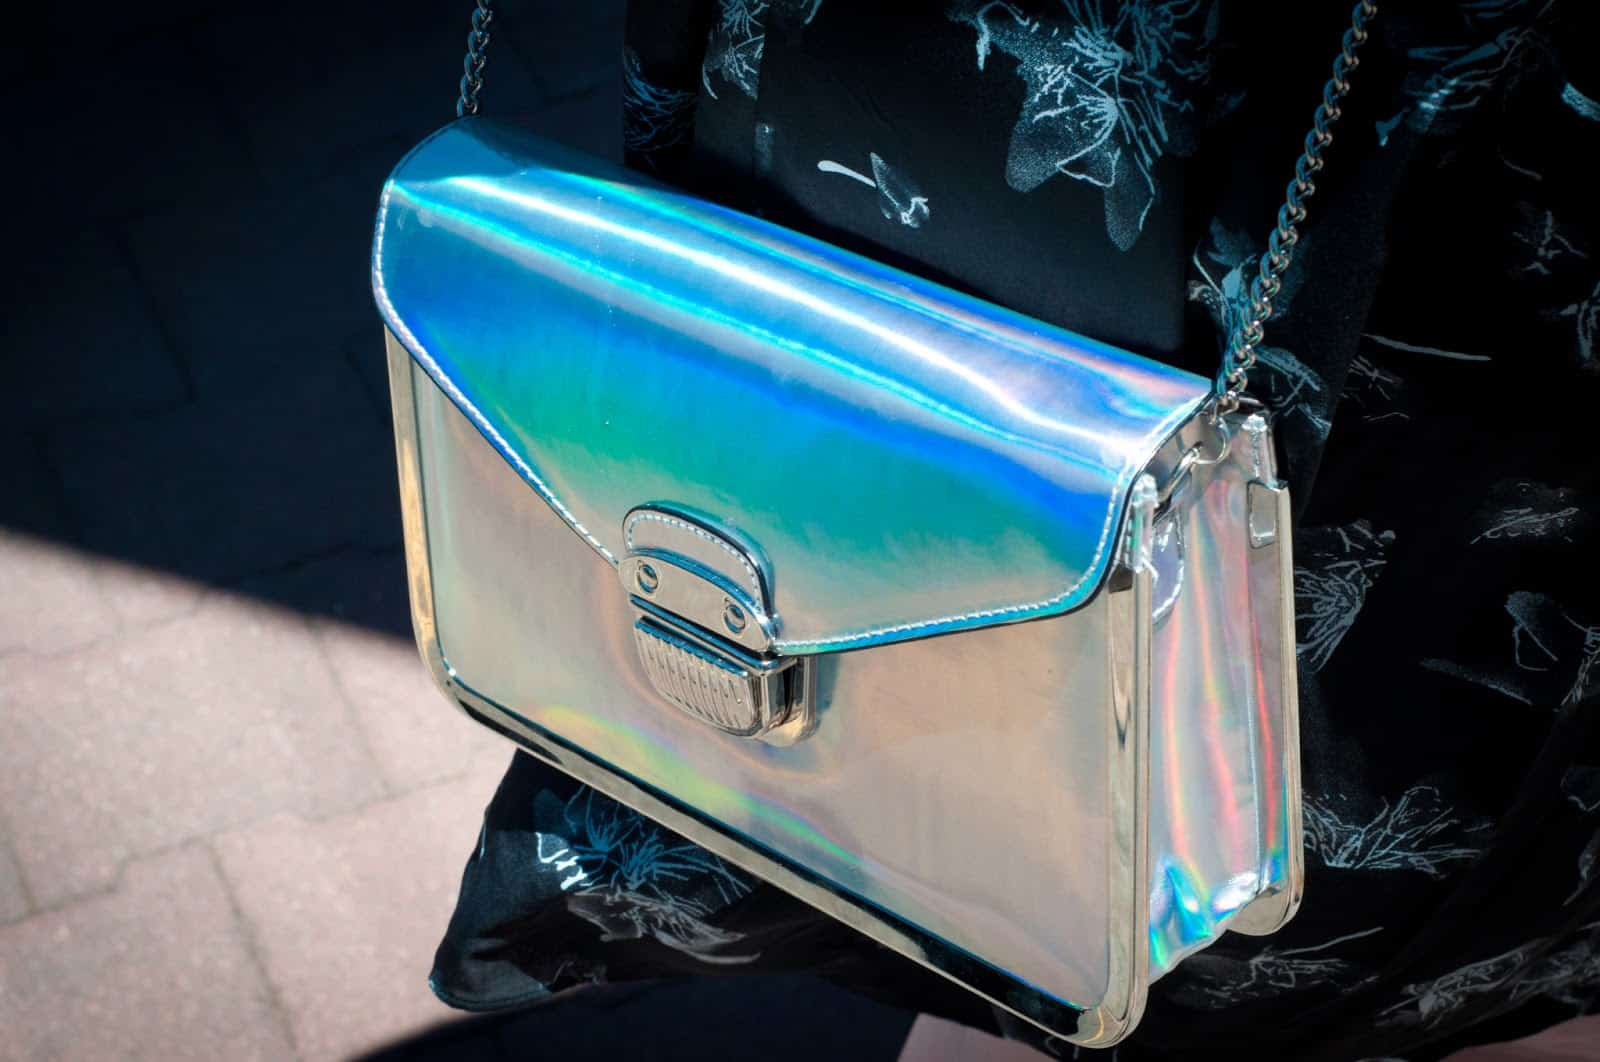 holographic bag The Holographic Trend! Retro Futuristic Glam Luxe Or Kitsch?